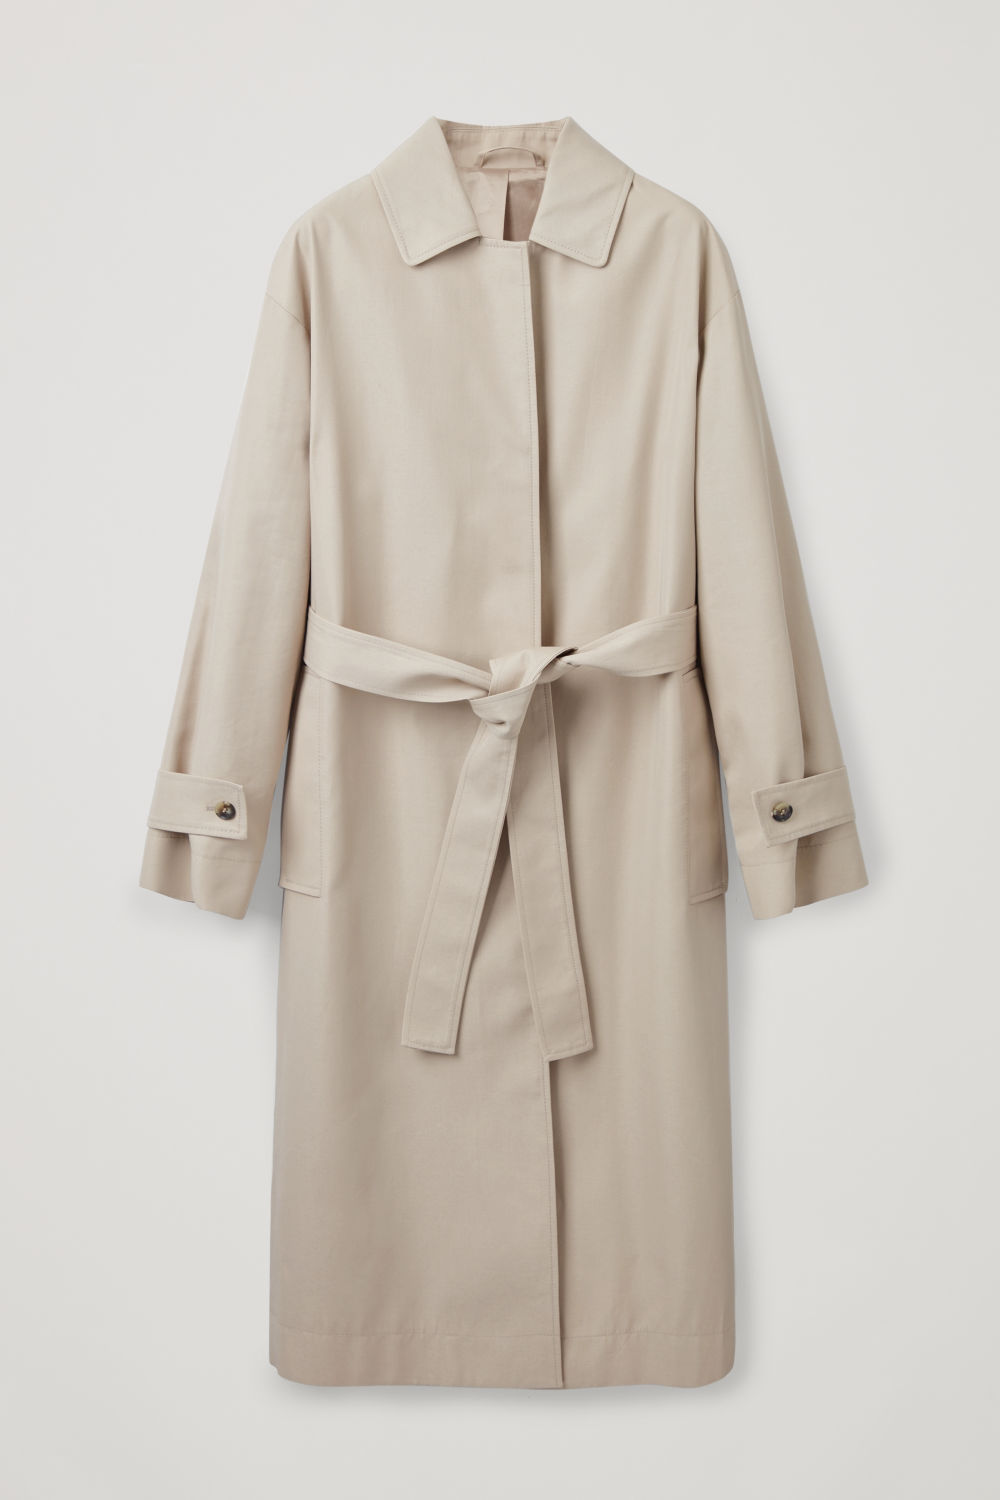 d85651e58ee6 ORGANIC-COTTON TRENCH COAT ORGANIC-COTTON TRENCH COAT